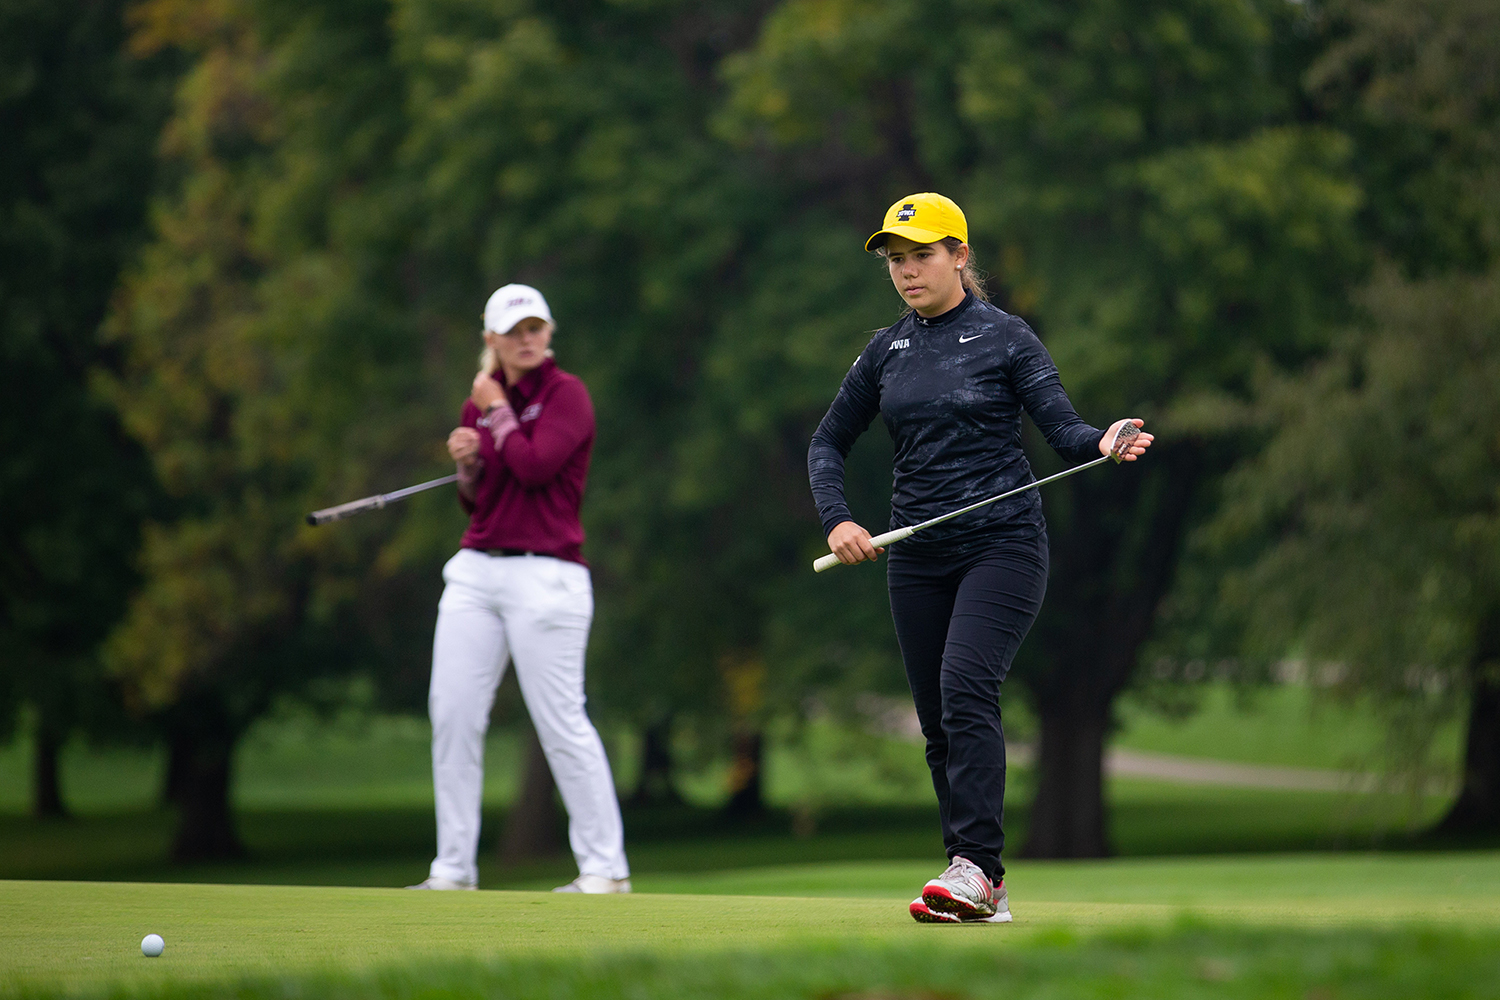 Iowa's Manuela Lizarazu follows her putt during the Diane Thomason Invitational at Finkbine Golf Course on September 30th, 2019. The Hawkeyes placed 1st overall.